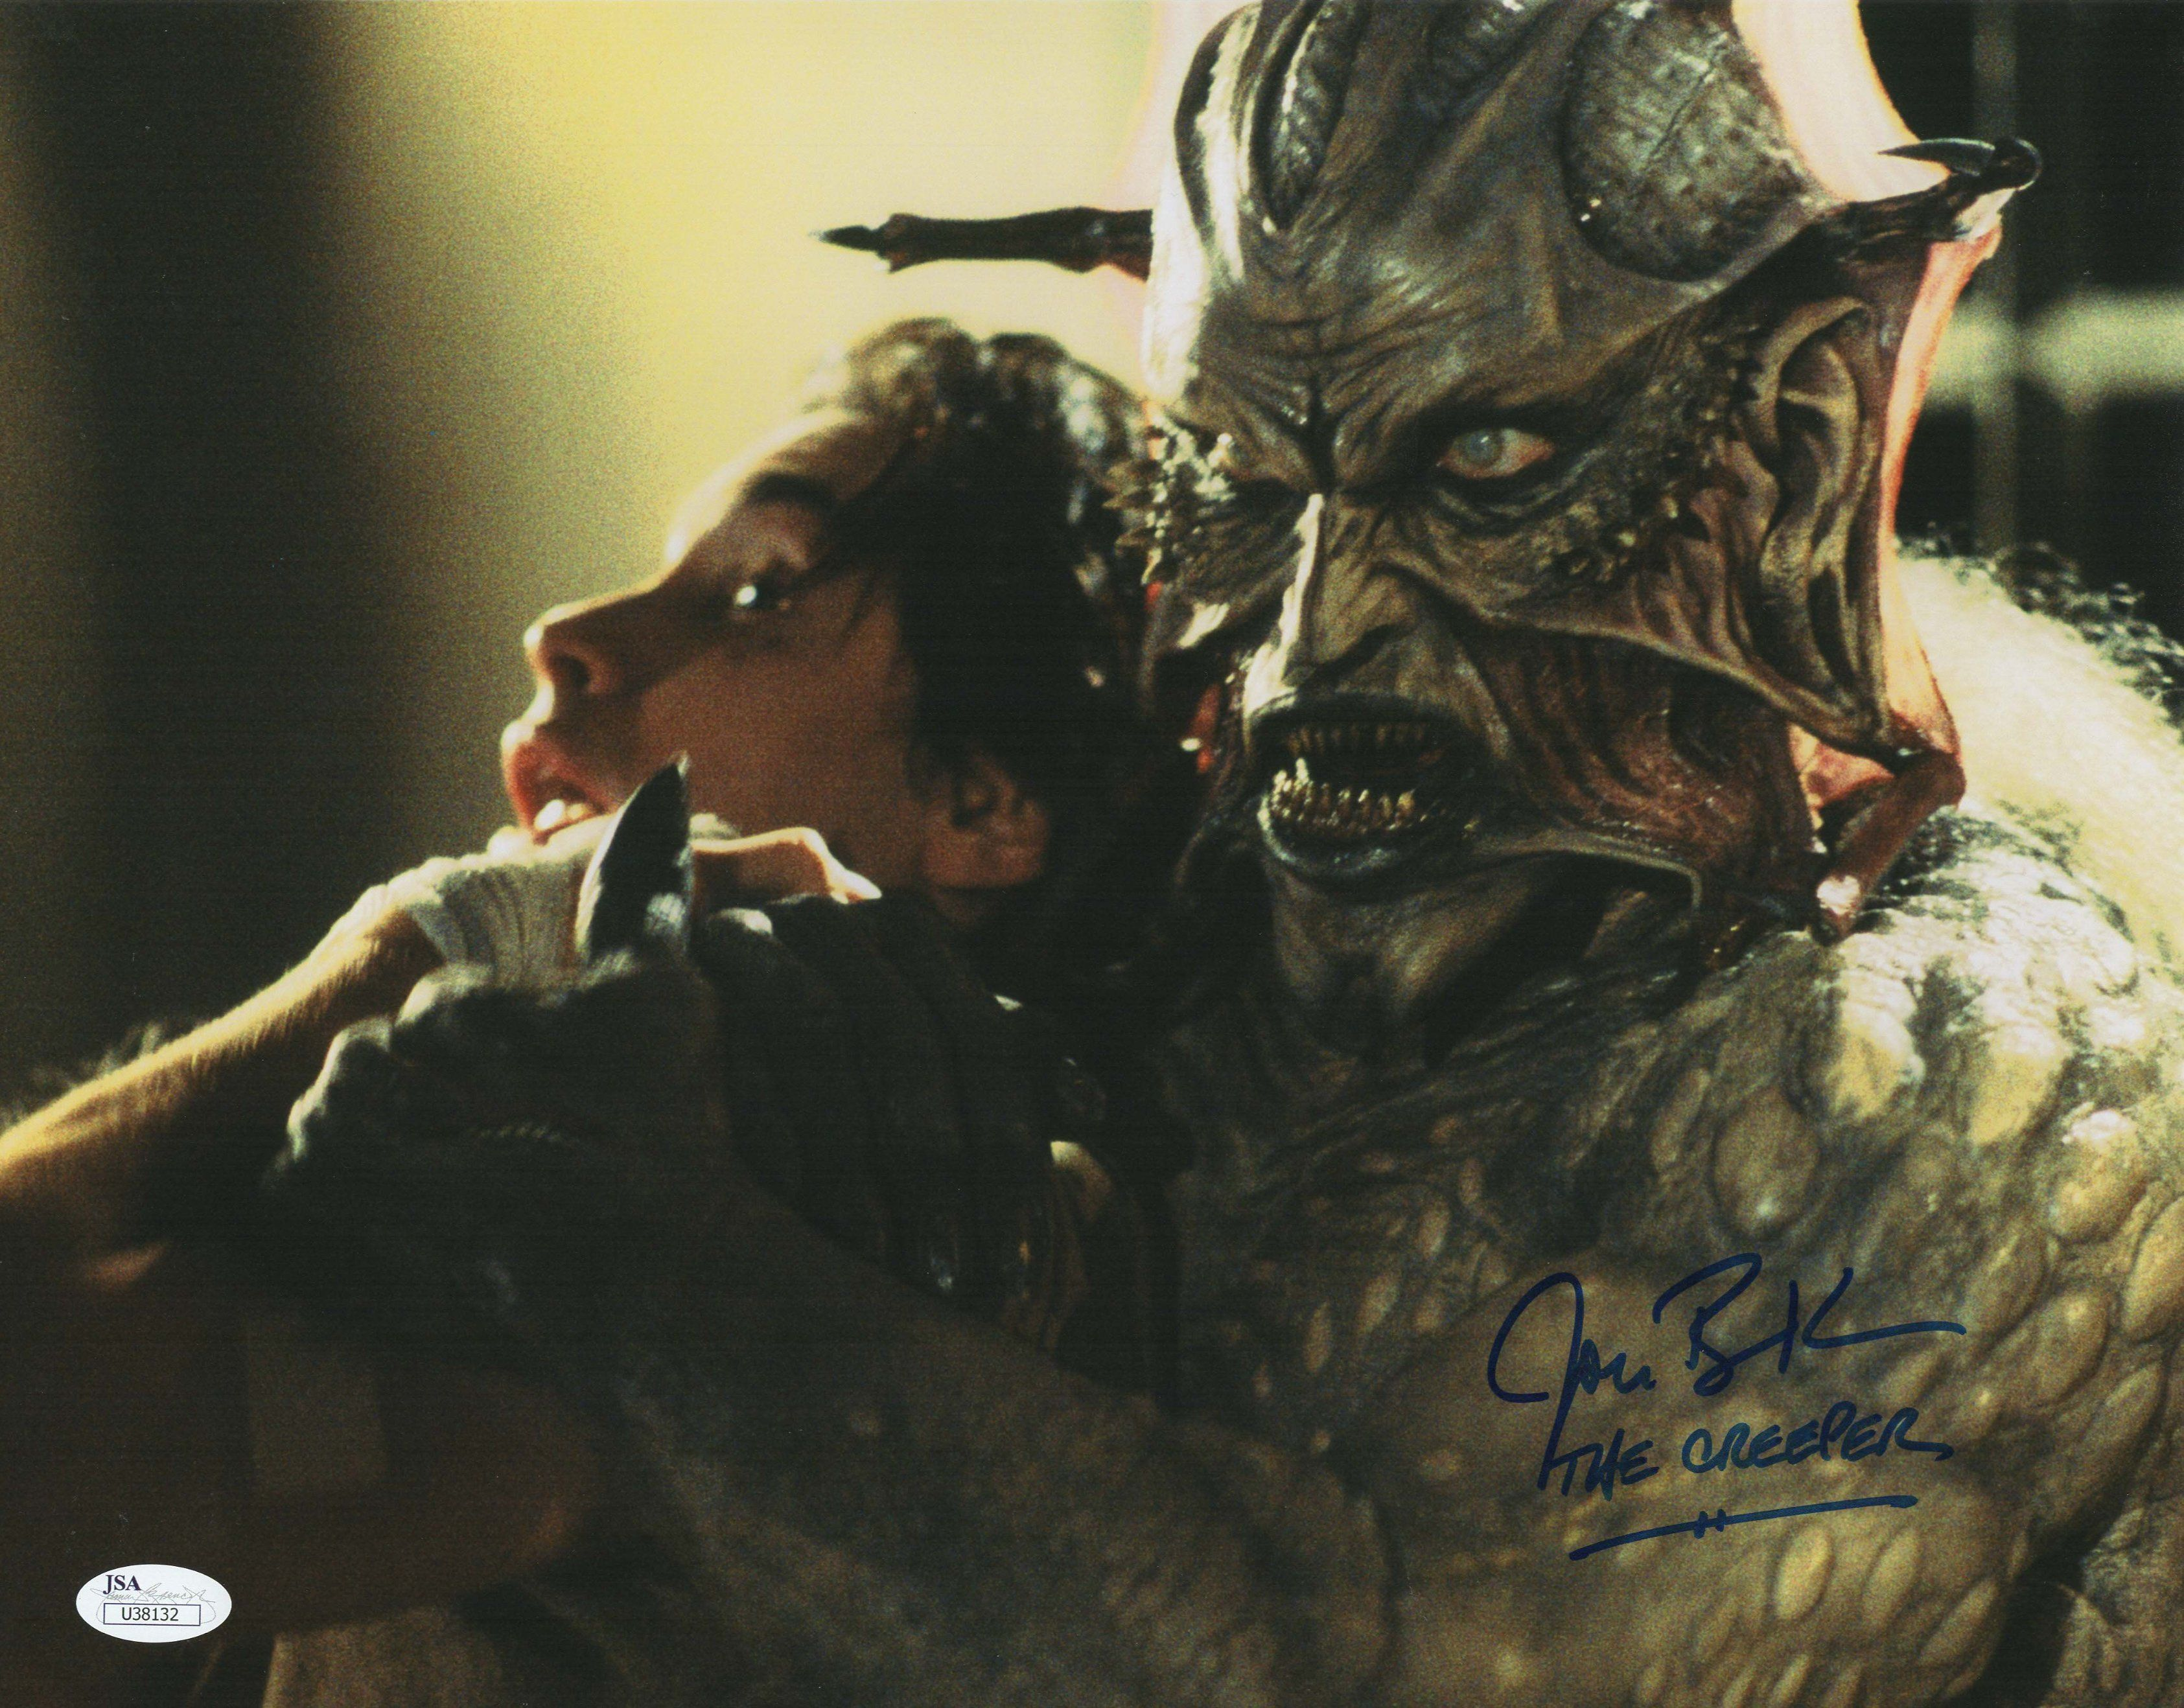 Jonathan Breck Authentic Signed 11x14 Photo Jeepers Creepers The